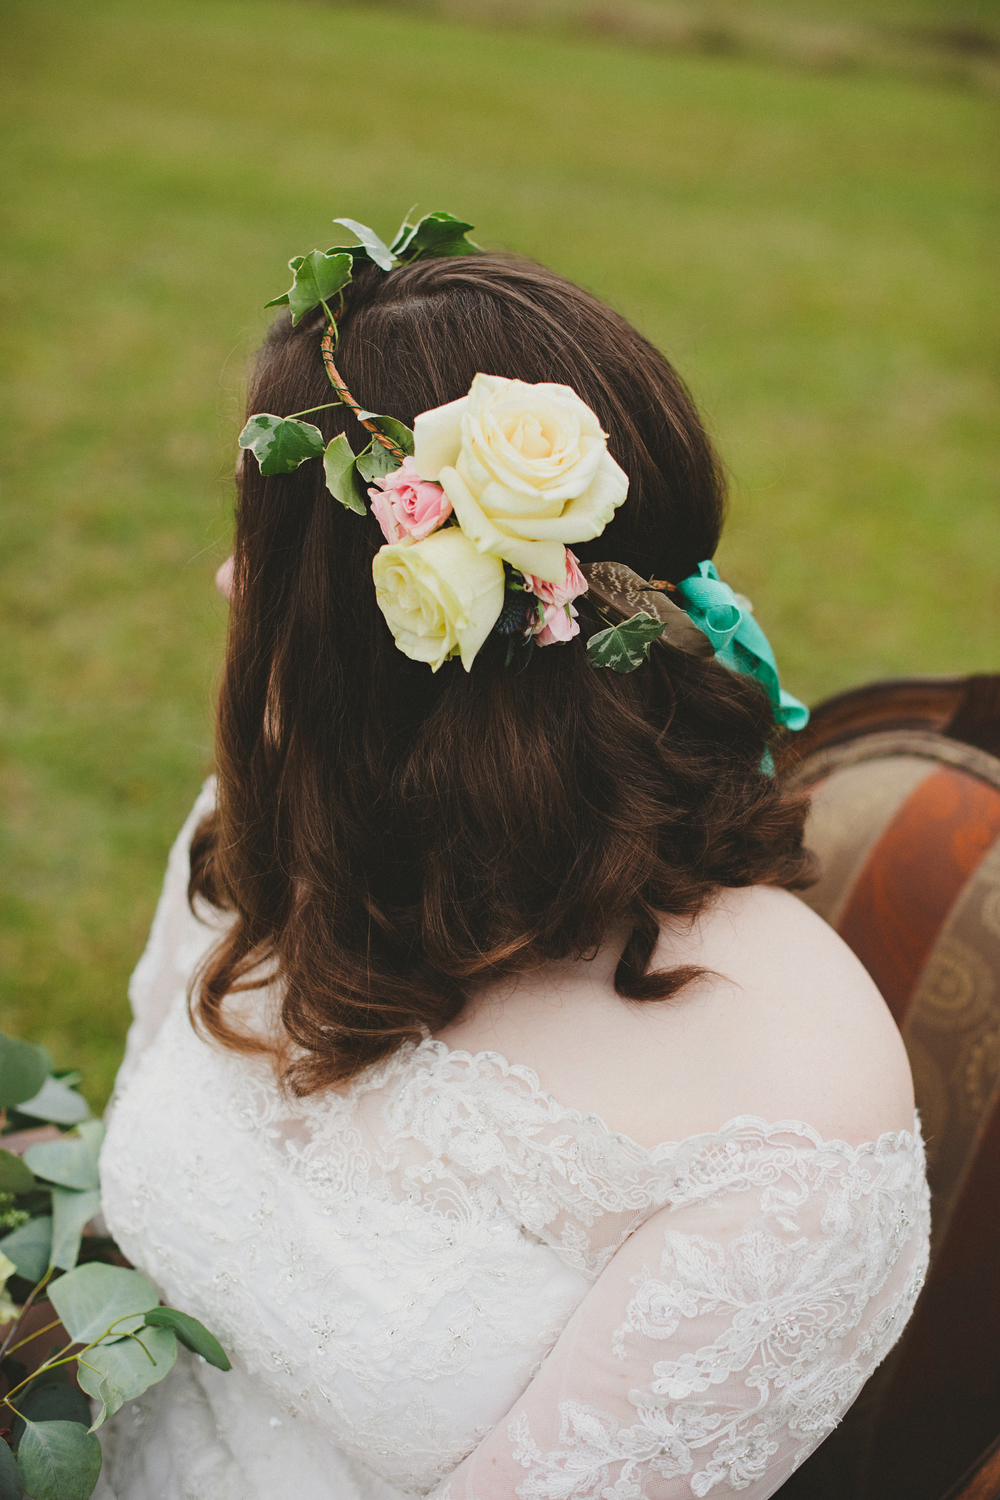 Ng-Photography-backyard-wedding-royal-hair-and-makeup-ivory-and-beau-wedding-planning-wedding-flowers-savannah-florist-savannah-flowers-savannah-weddings-savannah-wedding-savannah-event-planner-savannah-wedding-planner-savannah-rustic-wedding-25.jpg